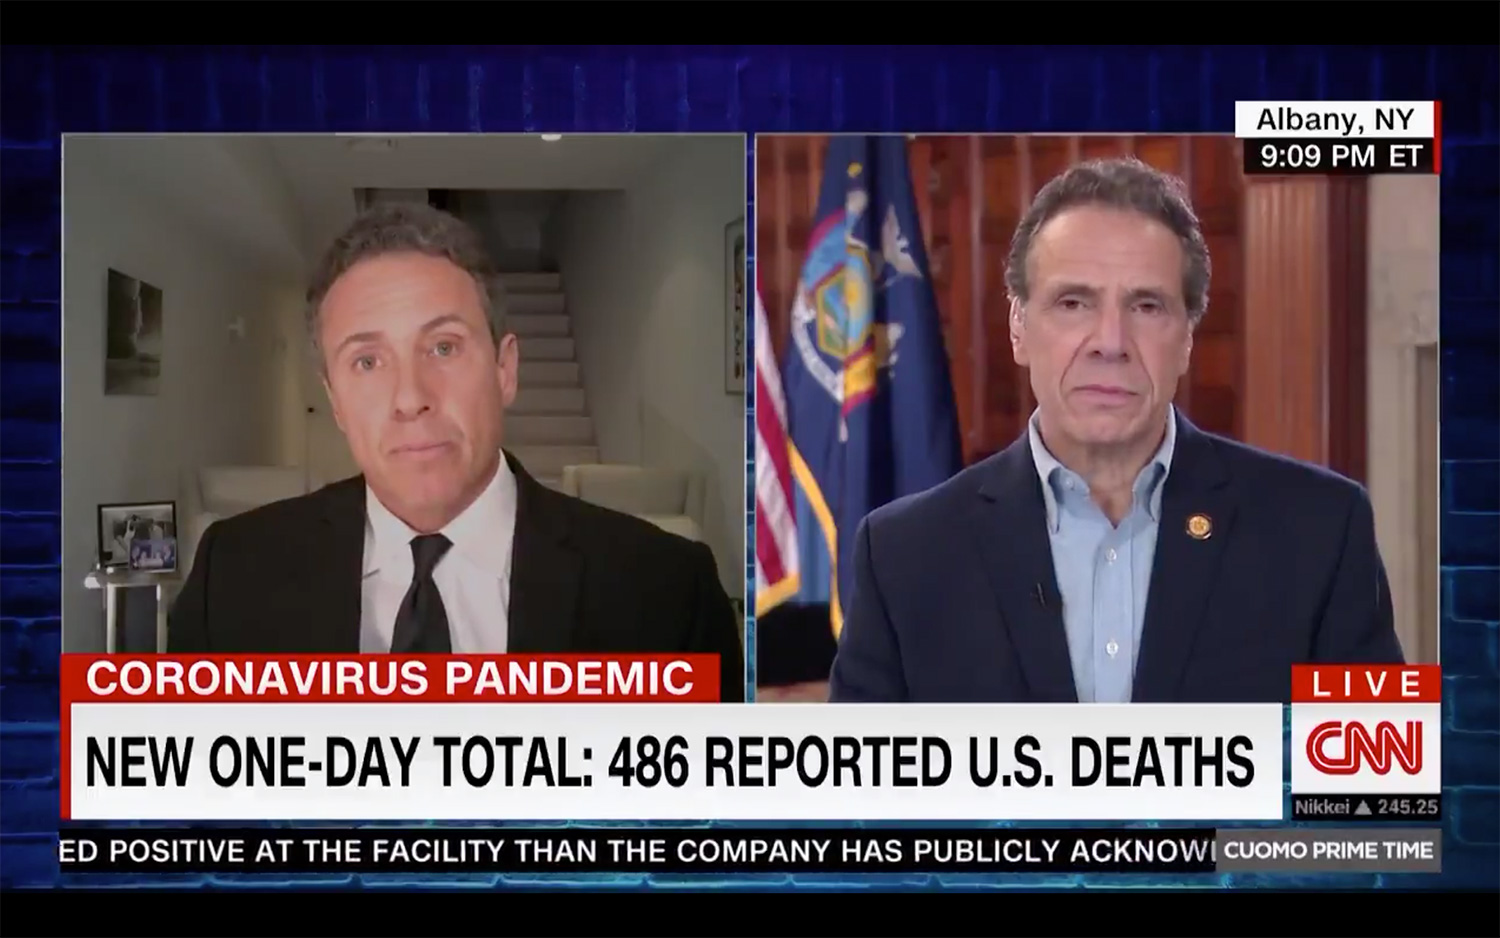 Andrew Cuomo and Brother Chris Cuomo Hilariously Bicker on CNN Again